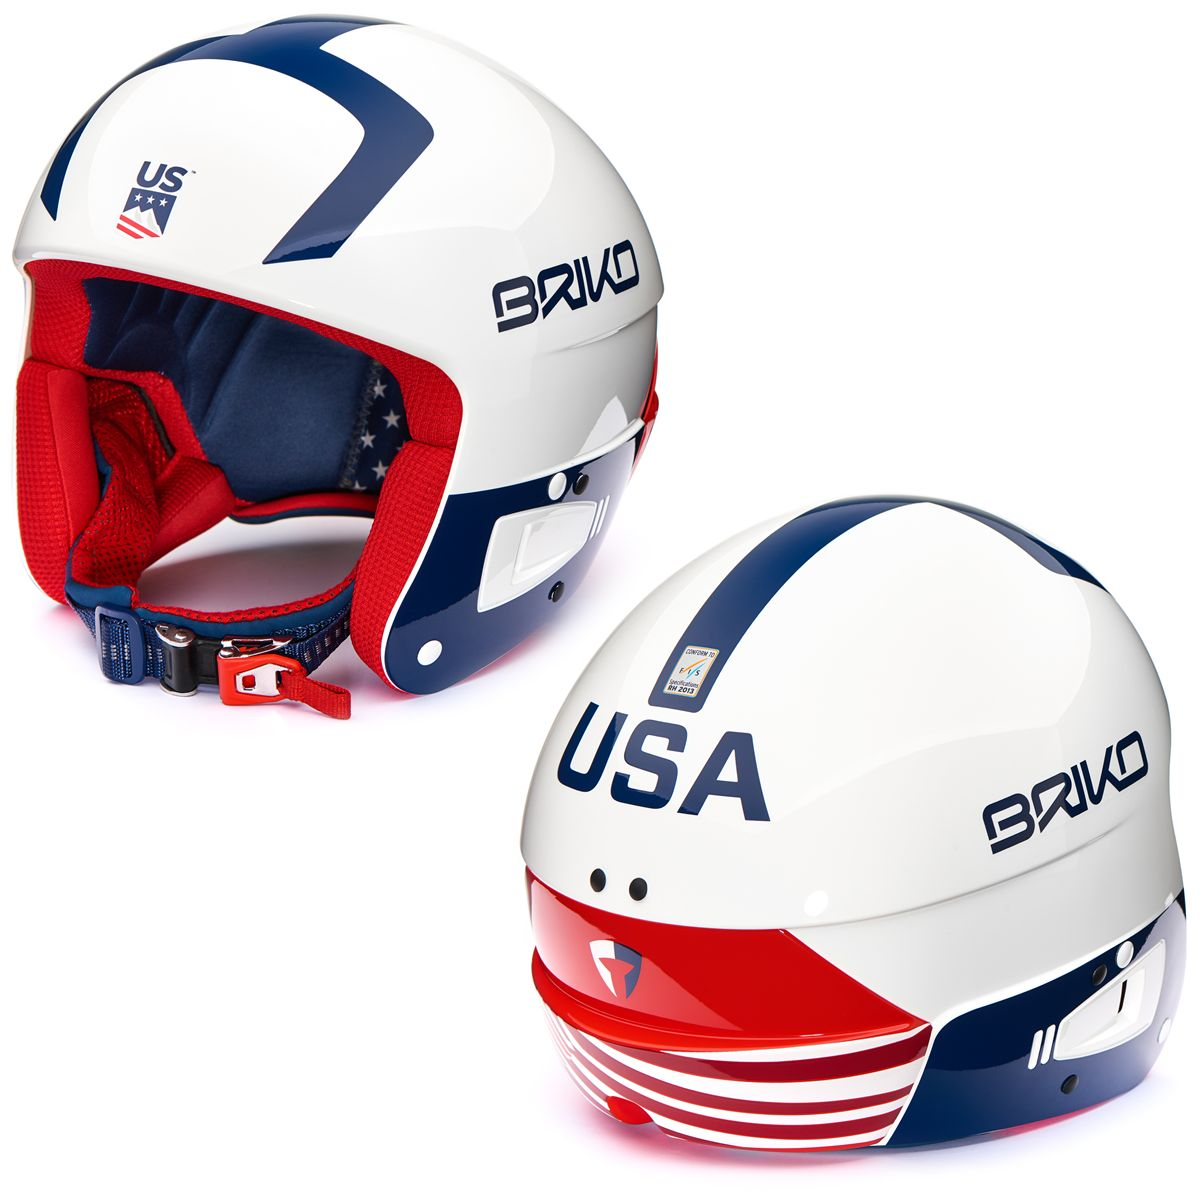 Briko HELMETS VULCANO FIS 6.8 - USSA Helmet USA Junior Boy Girl